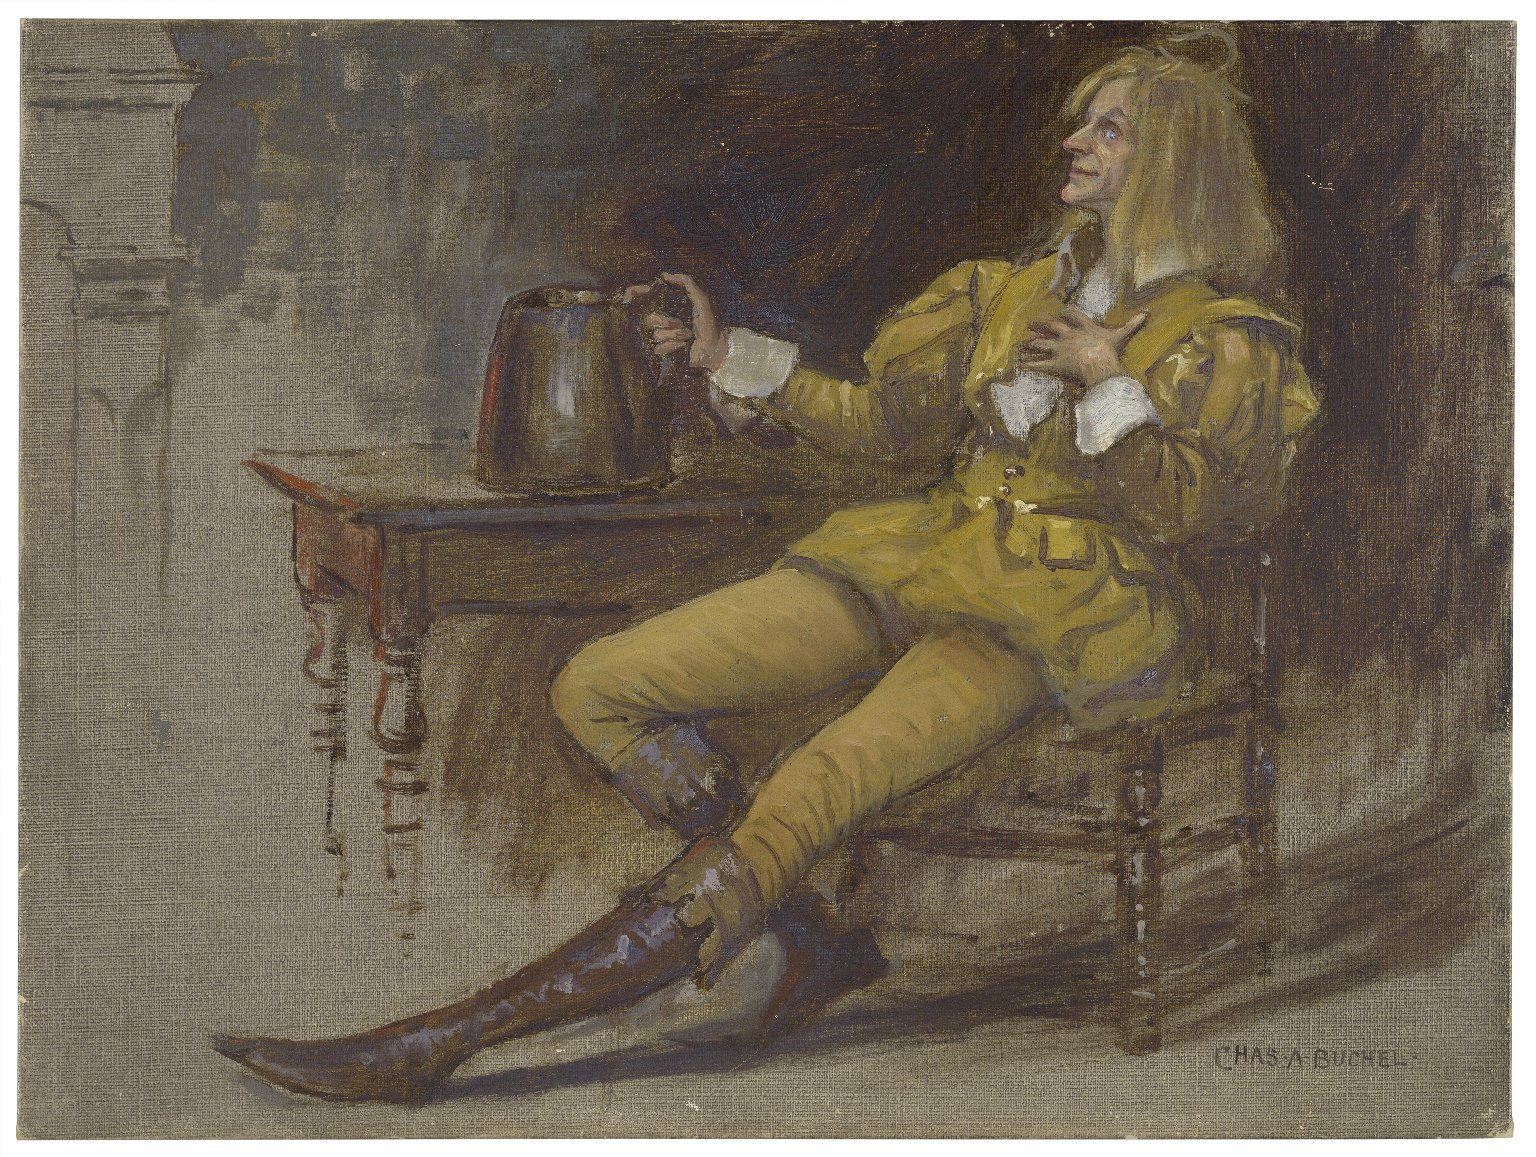 Norman Forbes as Sir Andrew Aguecheek [in Shakespeare's] Twelfth night [graphic] / Chas. A. Buchel.